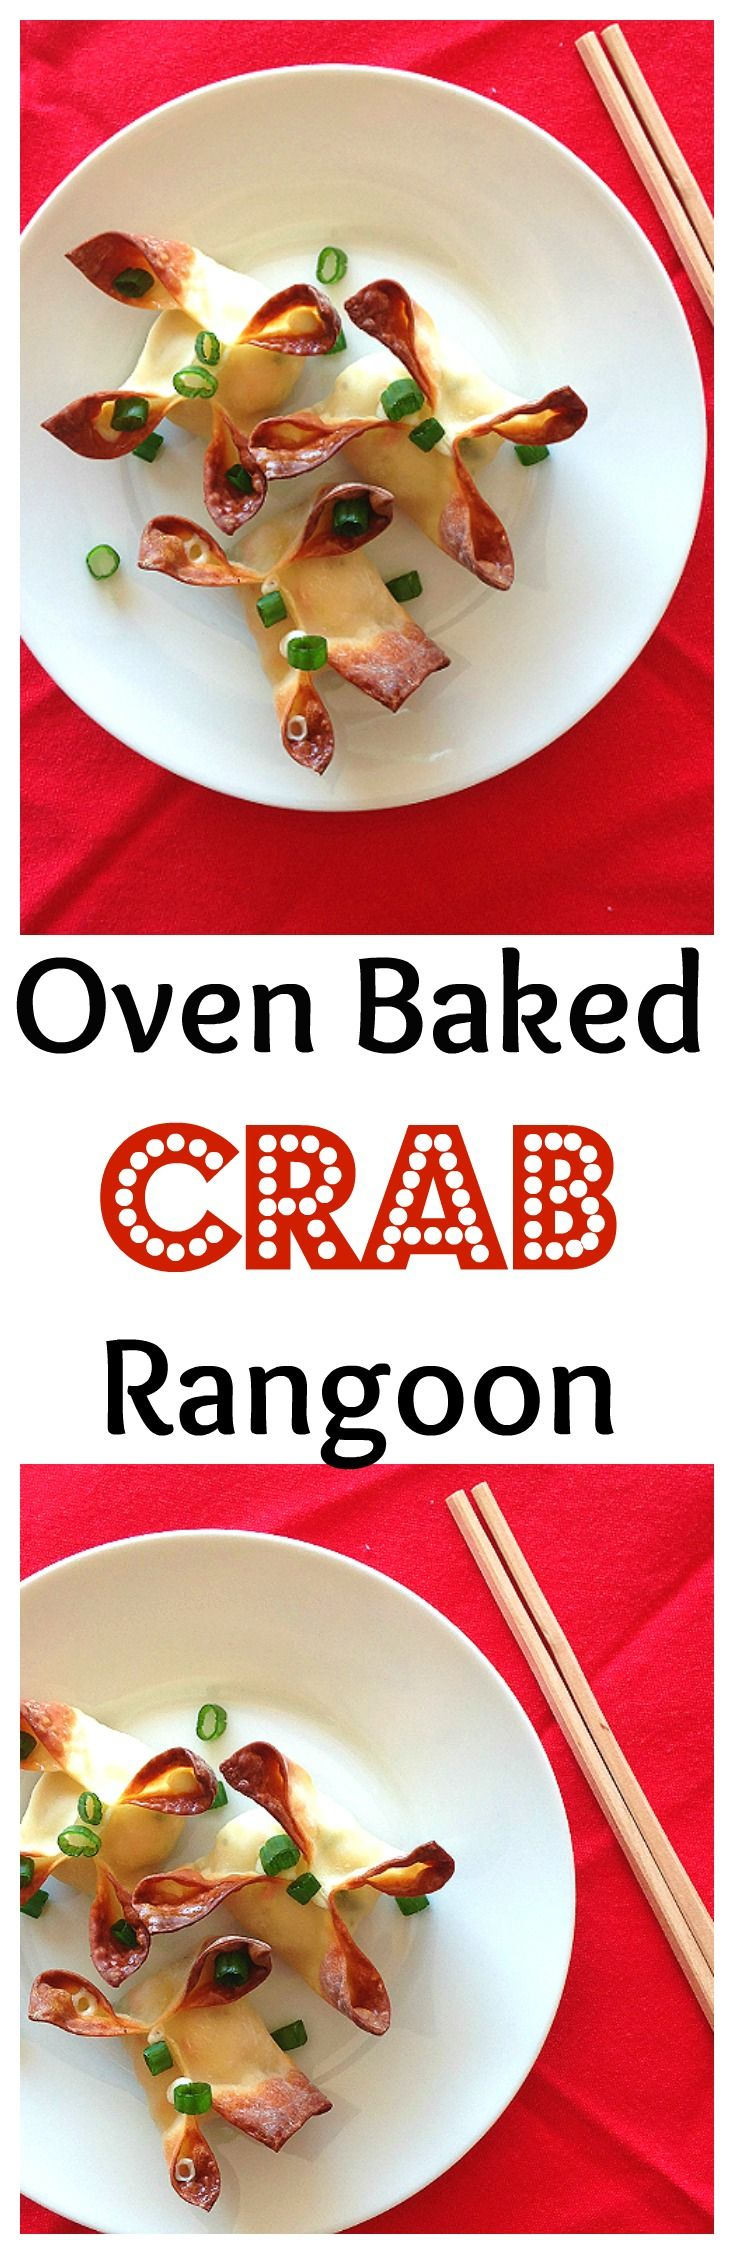 Oven baked crab Rangoon makes a great appetizer. Creamy on the inside and crunchy on the outside!